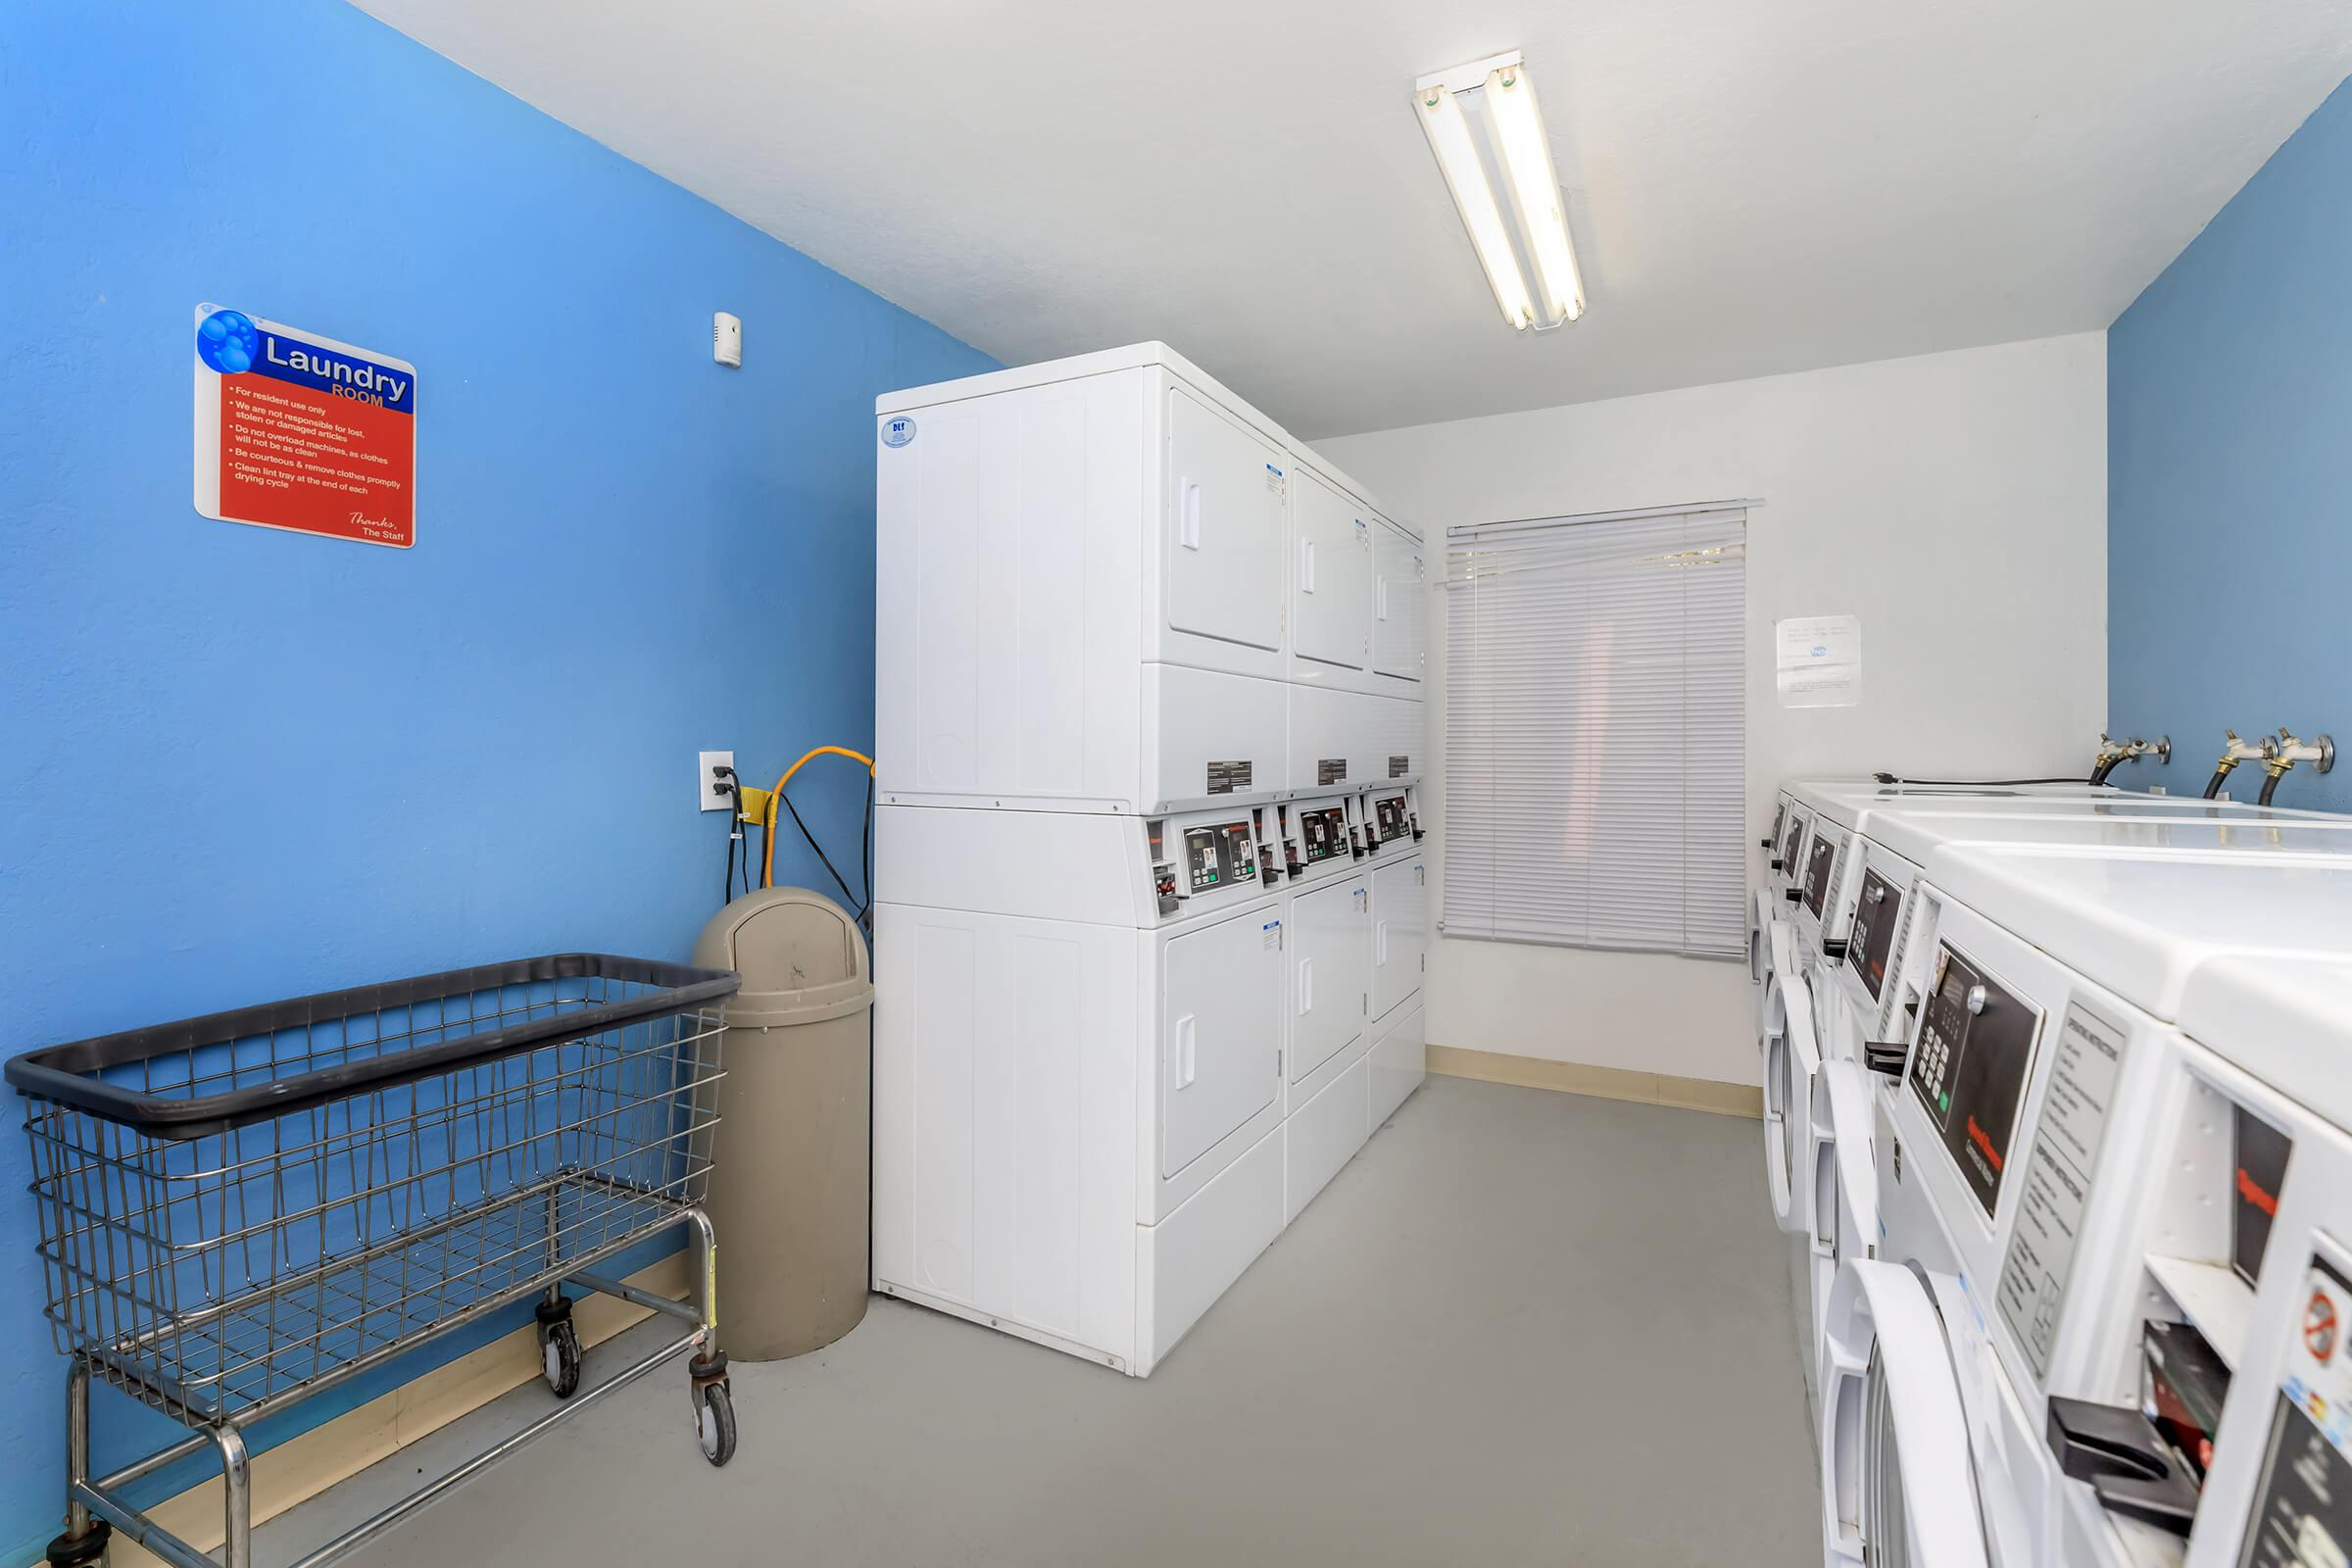 Laundry at Fairway Village in San Ramon CA